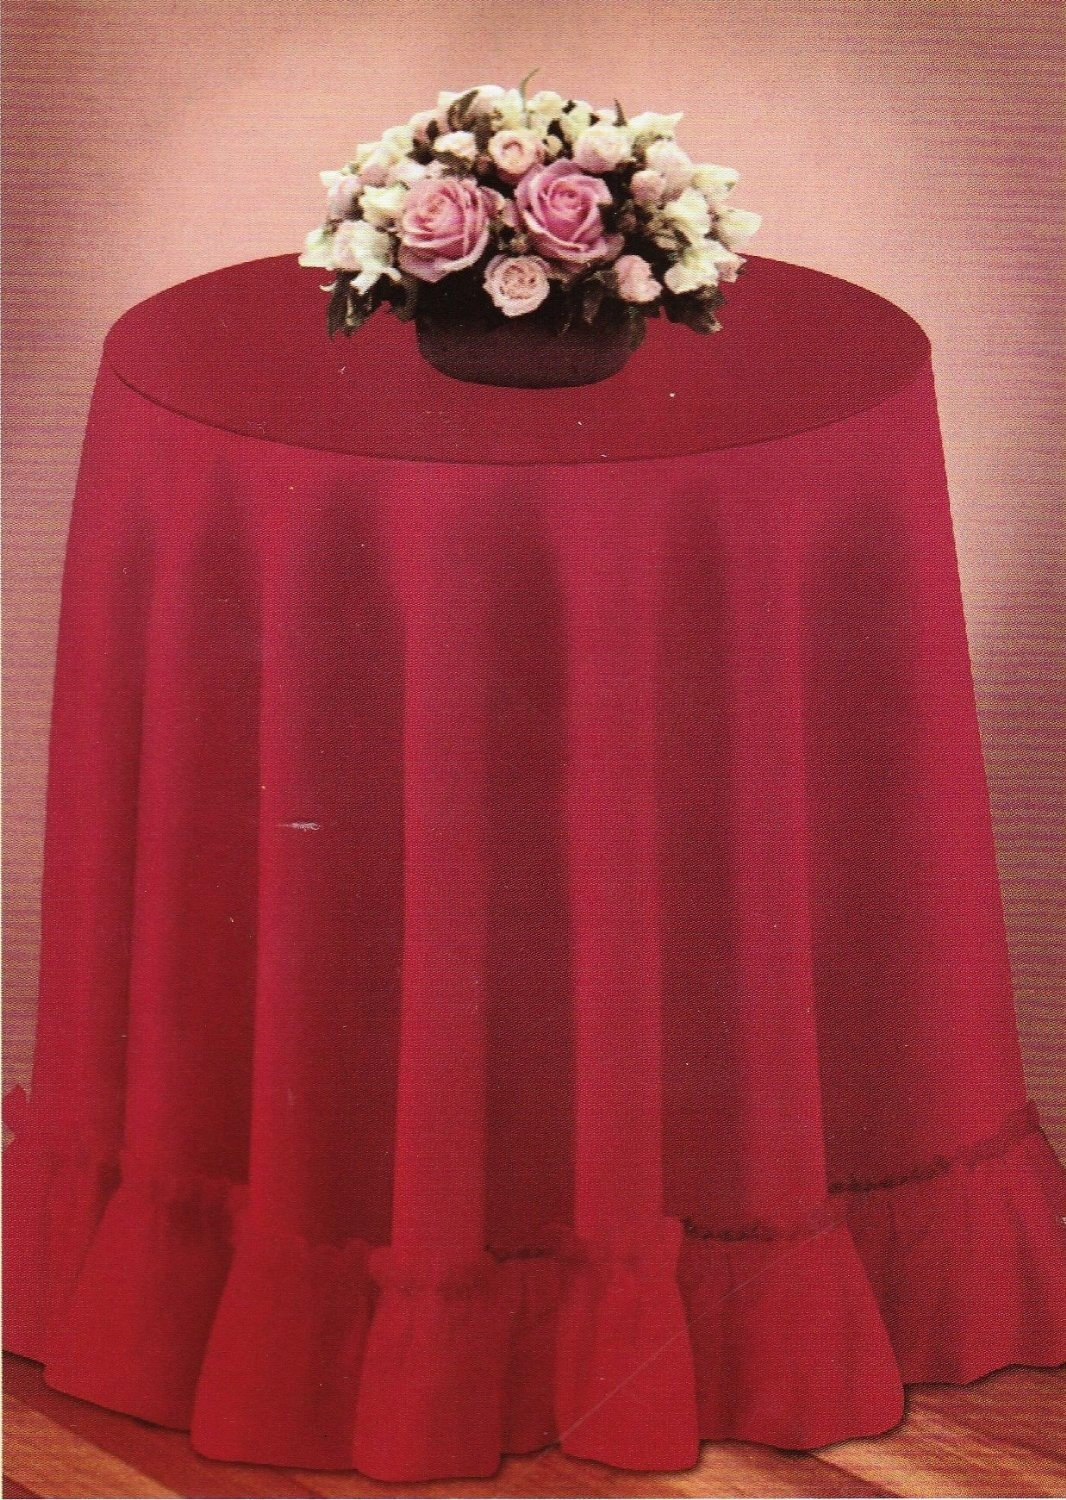 round decorator tablecloth fashion solid color accent selection woven table linen ruffled edge burgundy red home kitchen small porch outdoor teak side west elm coffee interior